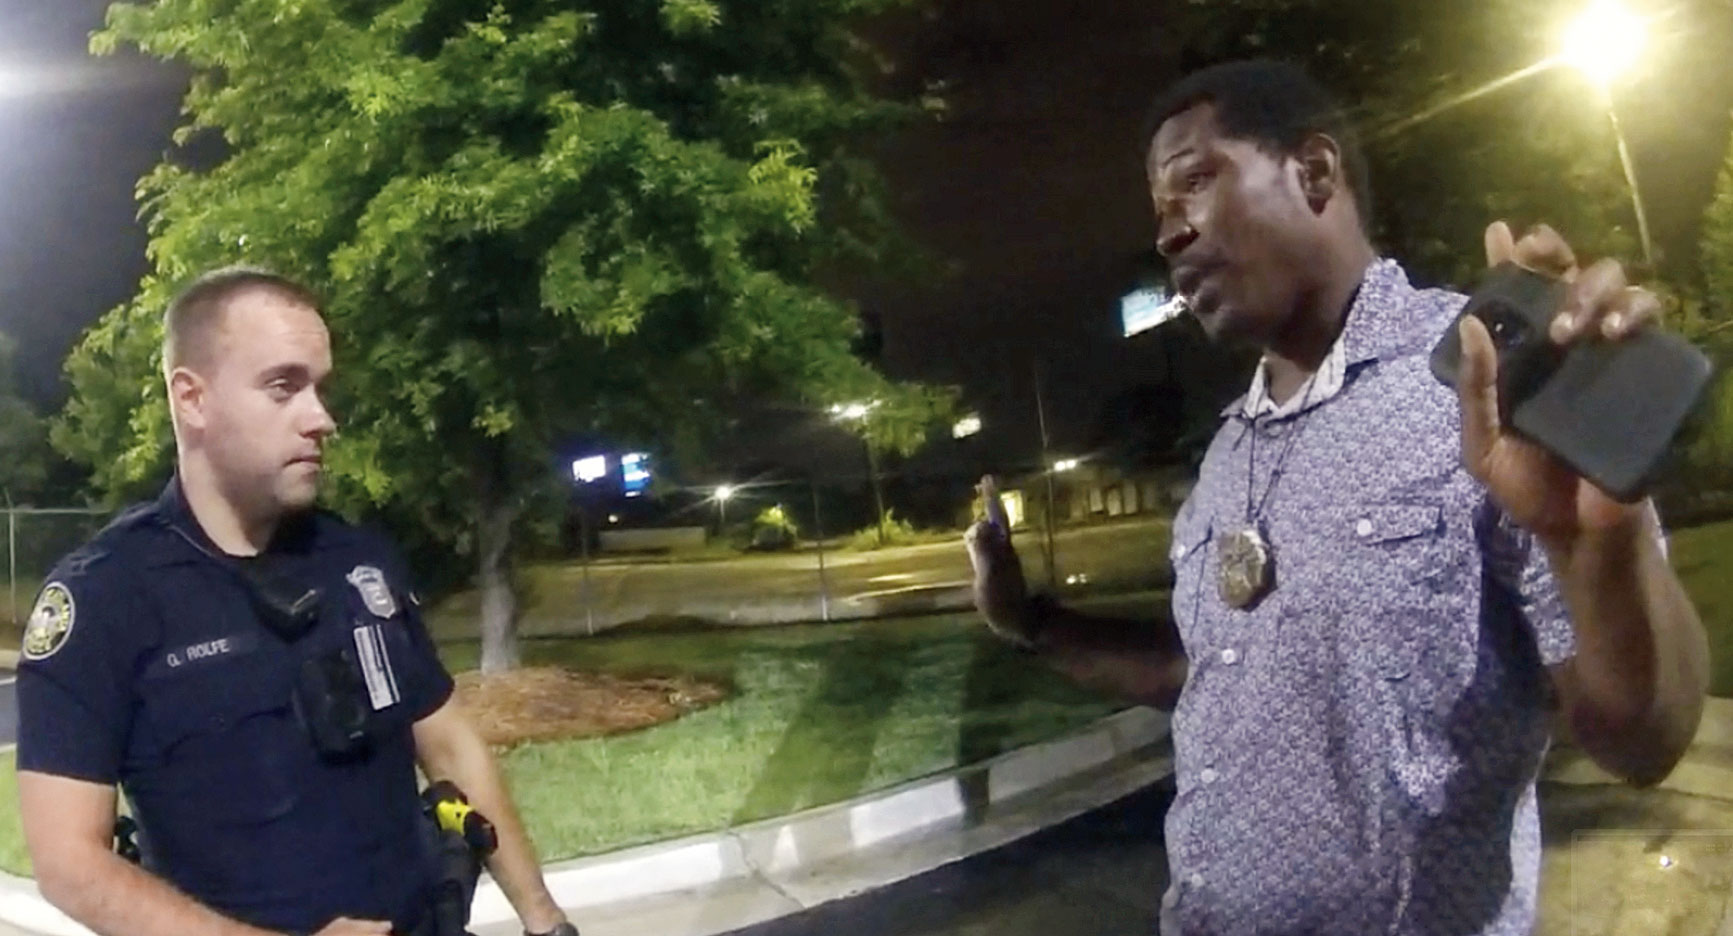 Footage shows Rayshard Brooks speaking with officer Garrett Rolfe in the parking lot of a Wendy's restaurant in Atlanta on Friday.